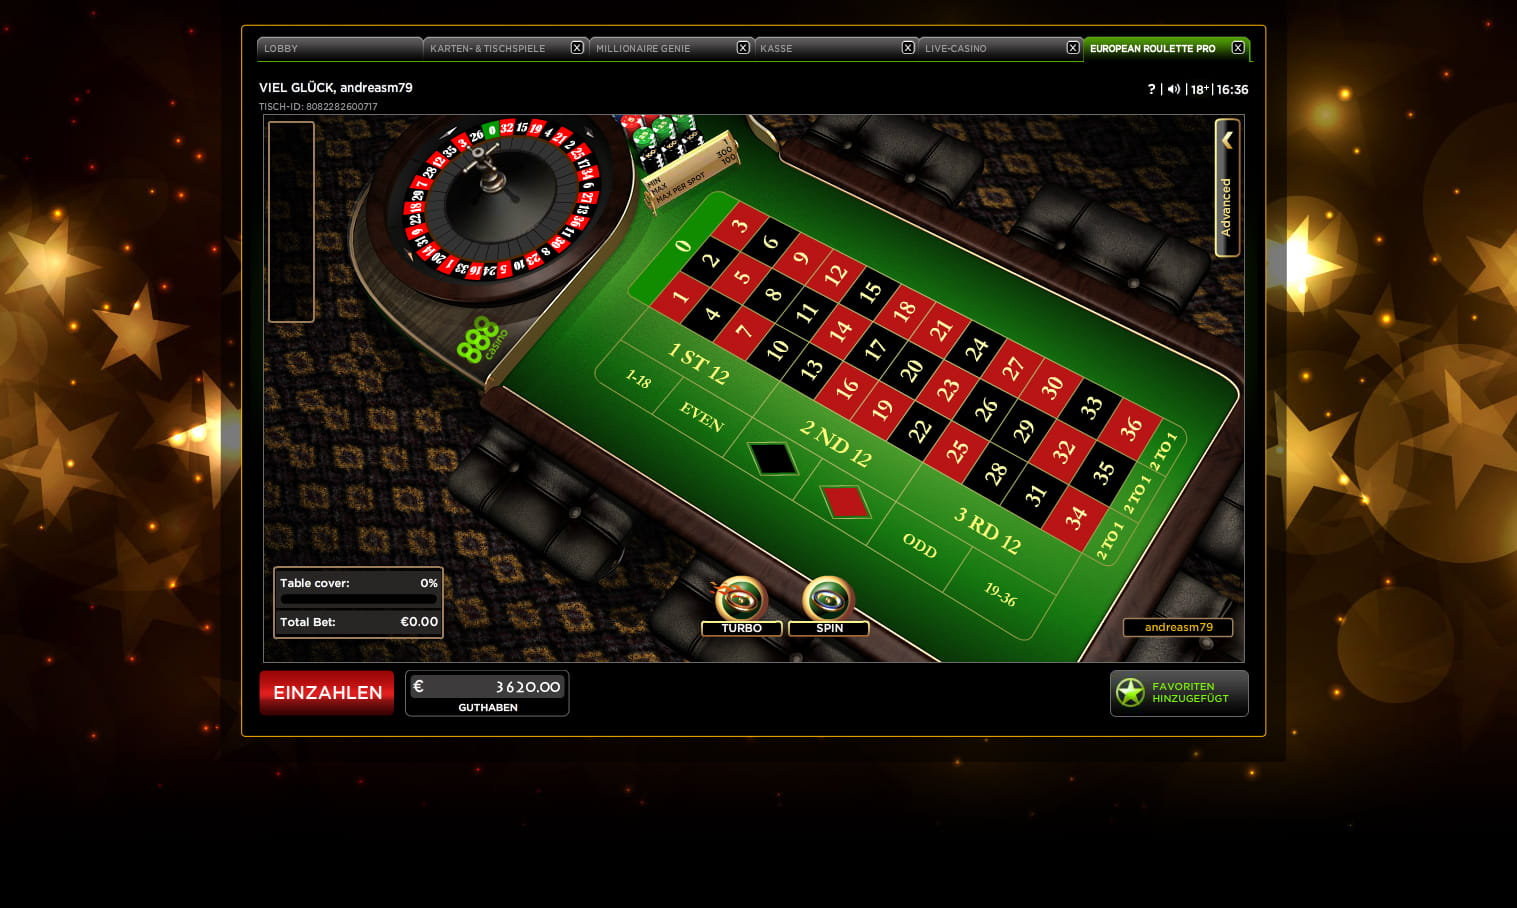 casino play online spielen deutsch